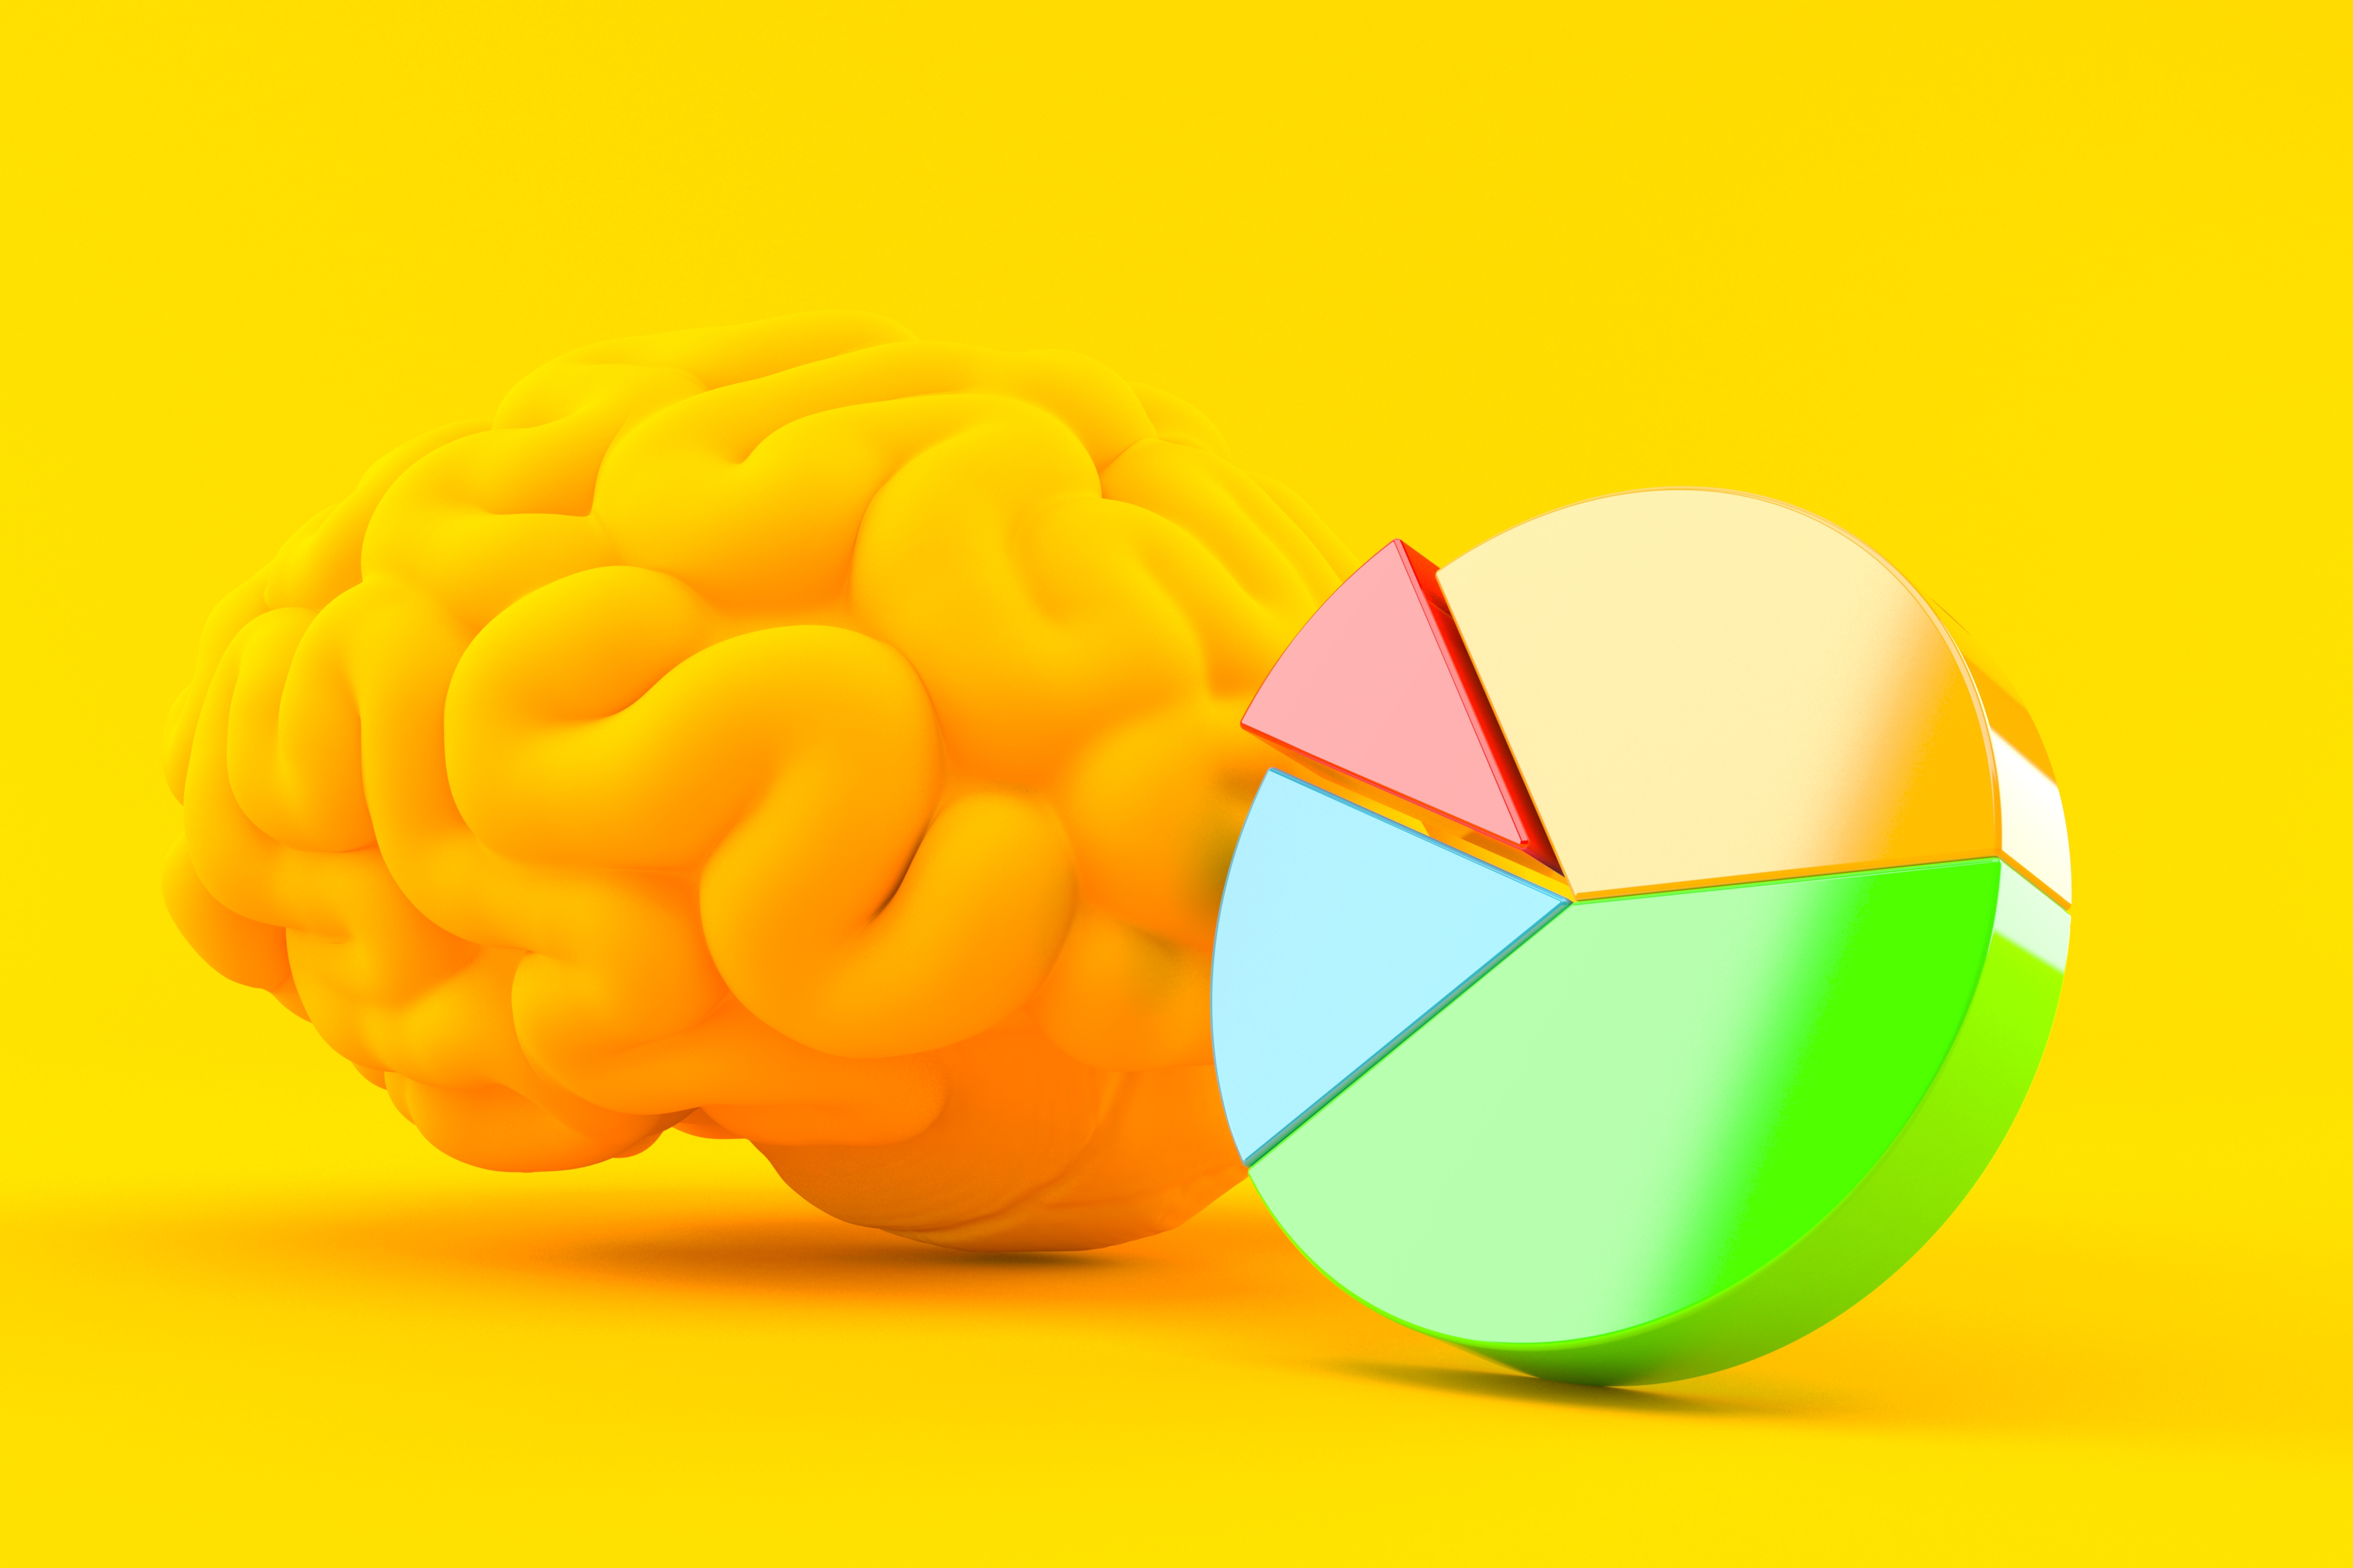 Myth: We Only Use 10% of Our Brains